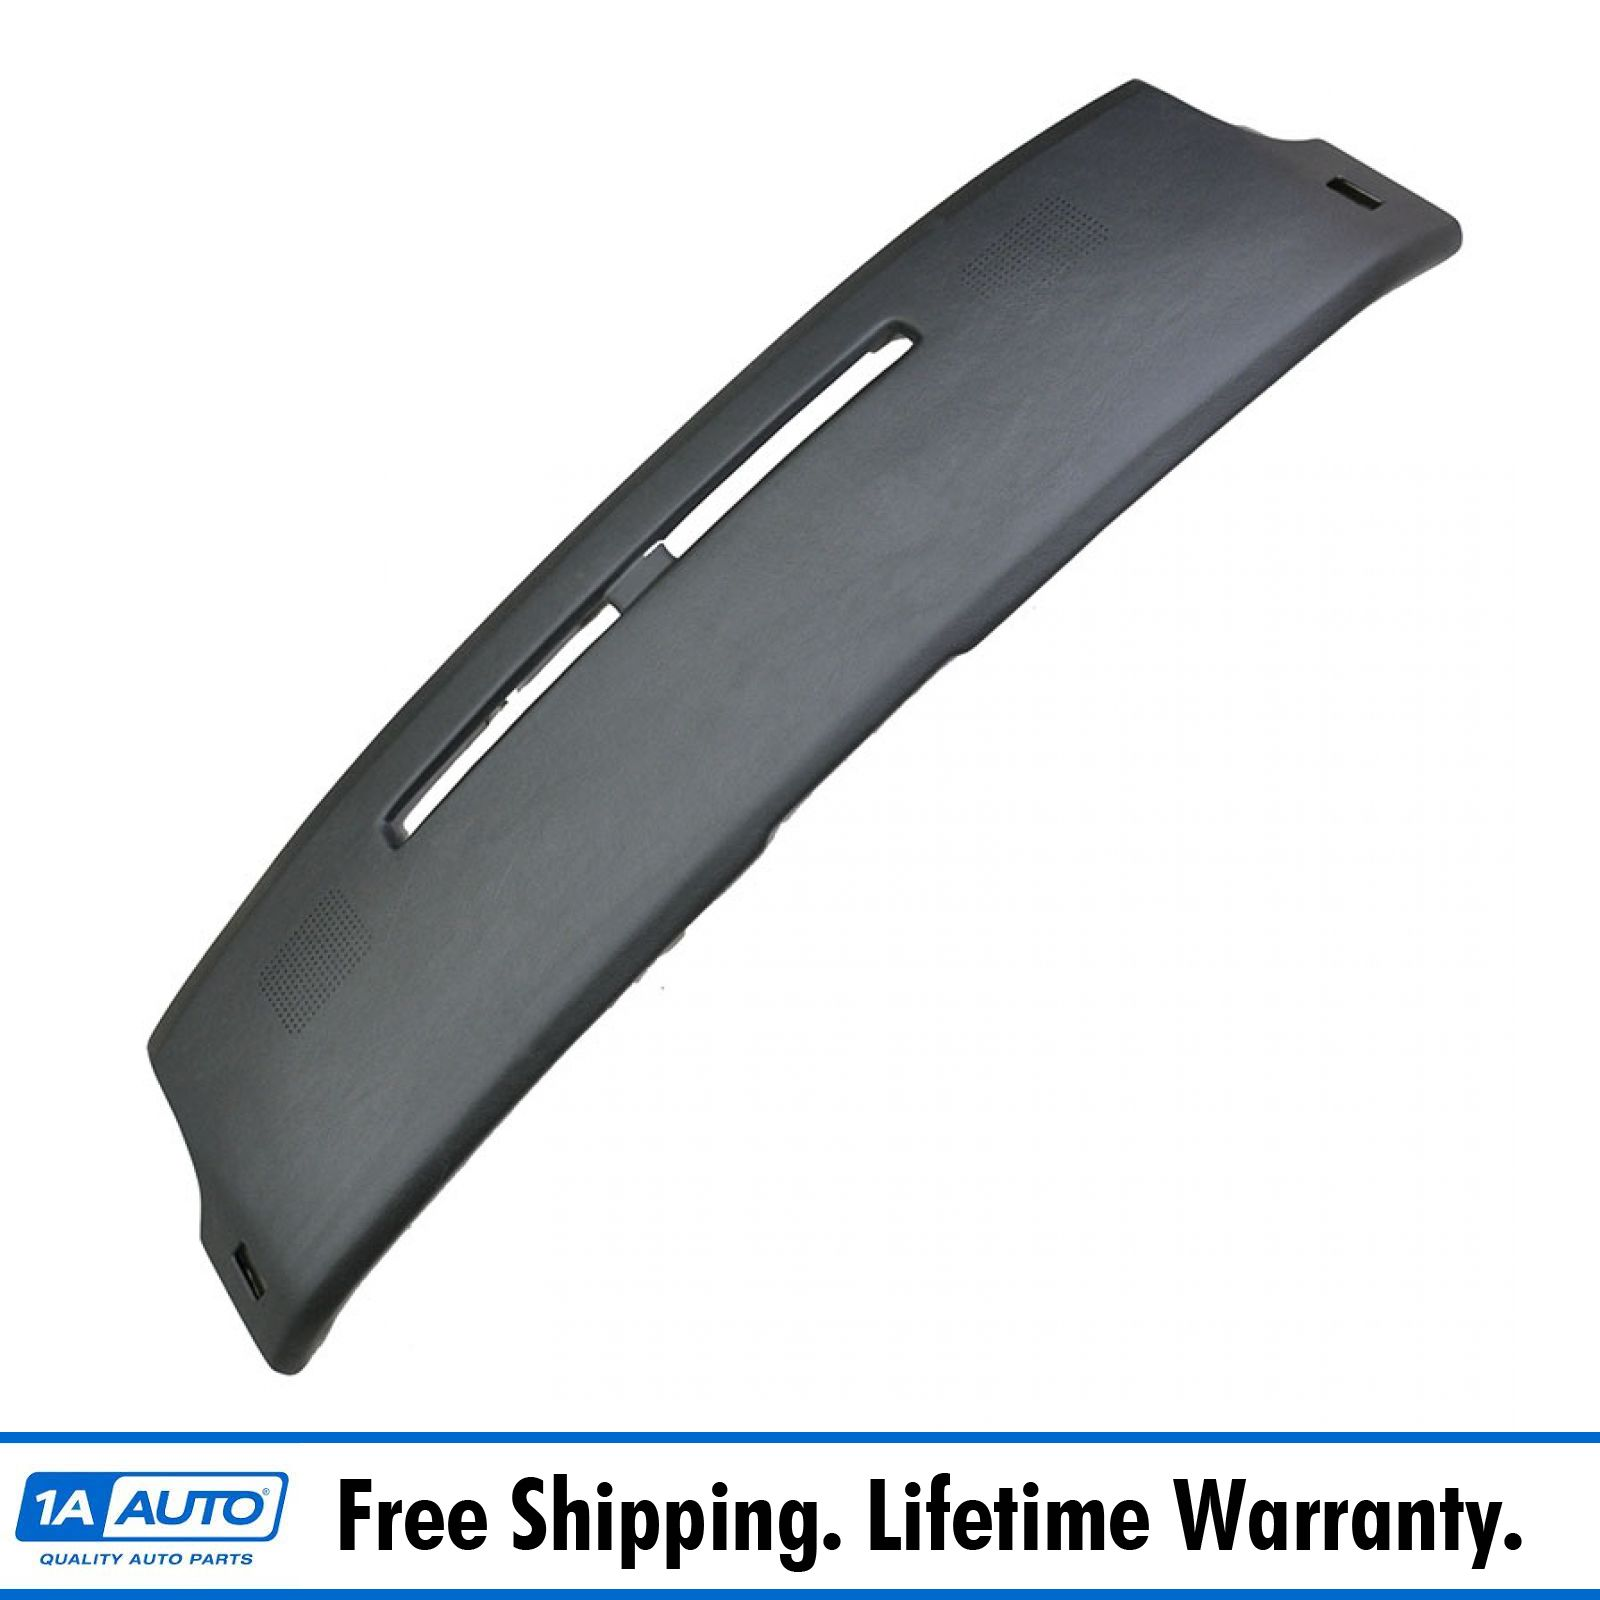 Molded Dash Board Pad Cover Cap Black NEW for 84-92 Chevy Camaro ...